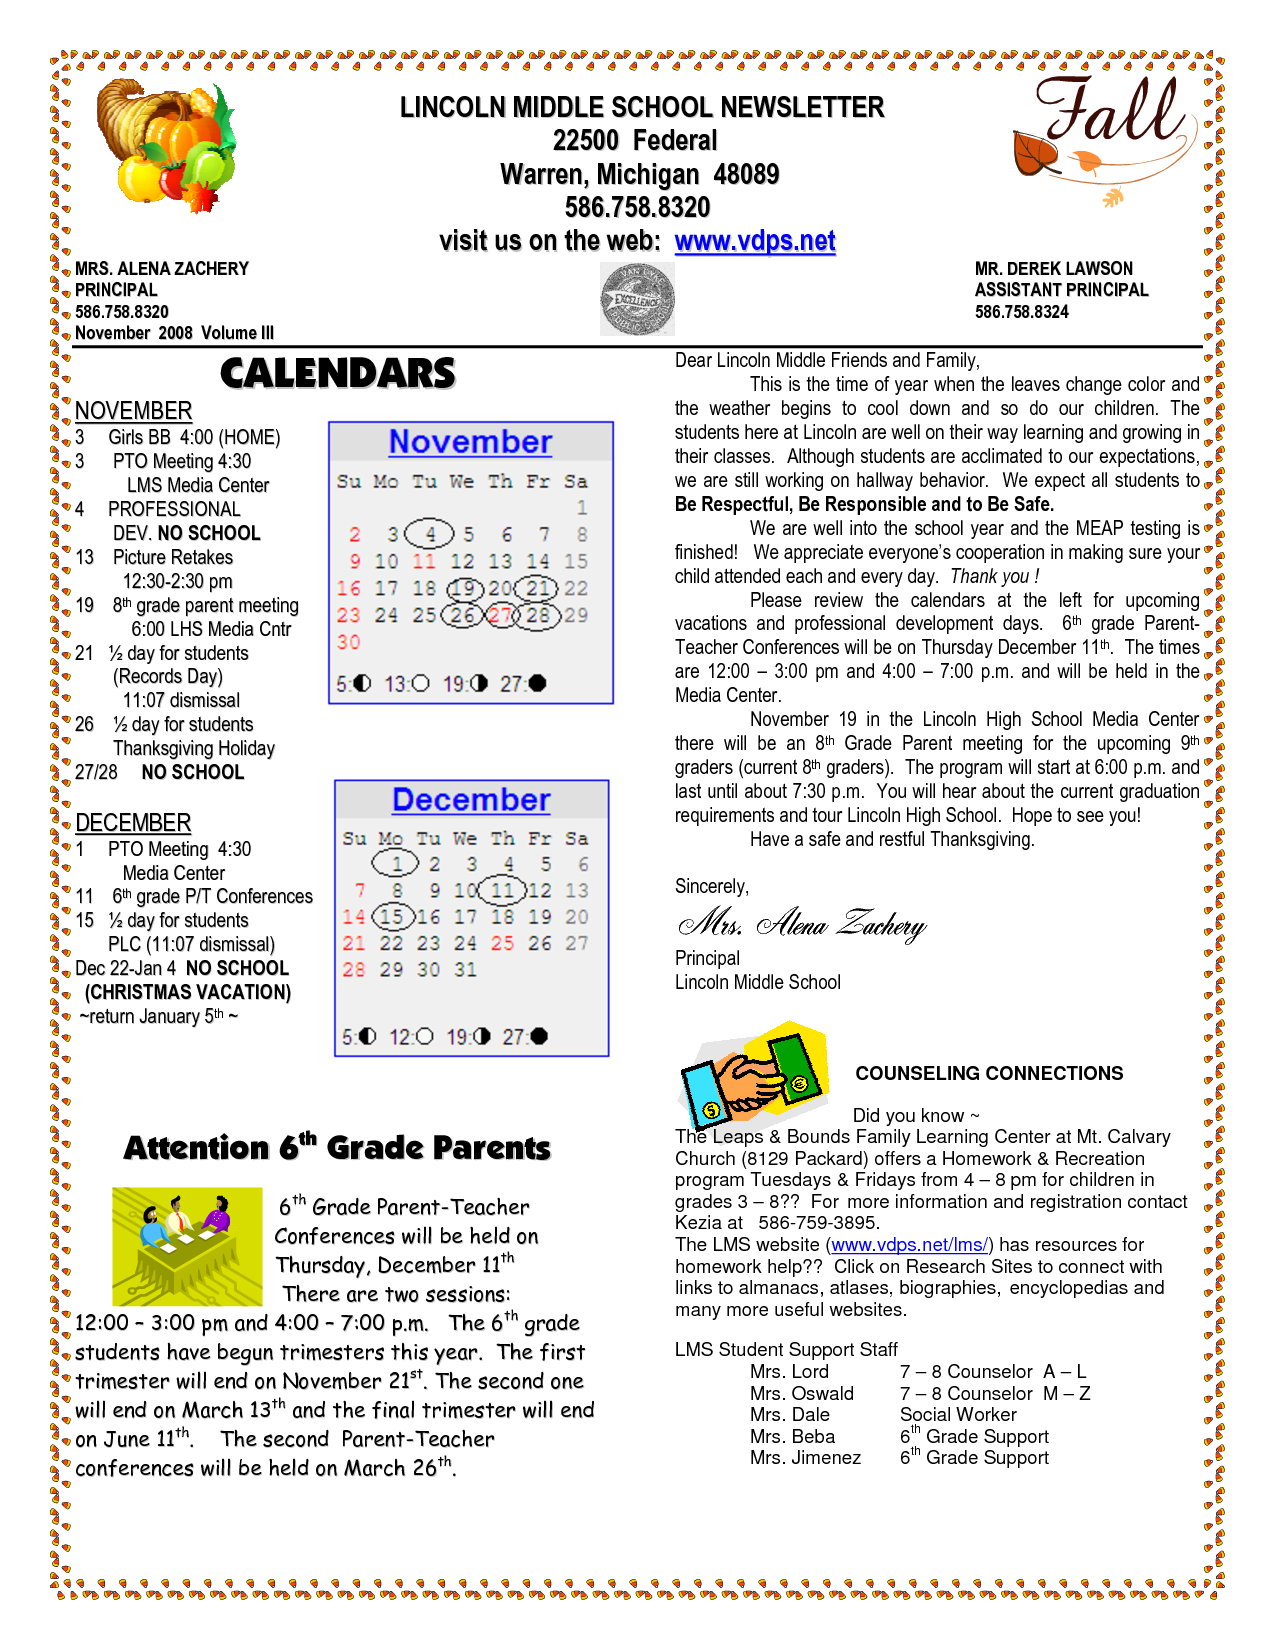 school newsletter templates | LINCOLN MIDDLE SCHOOL NEWSLETTER ...